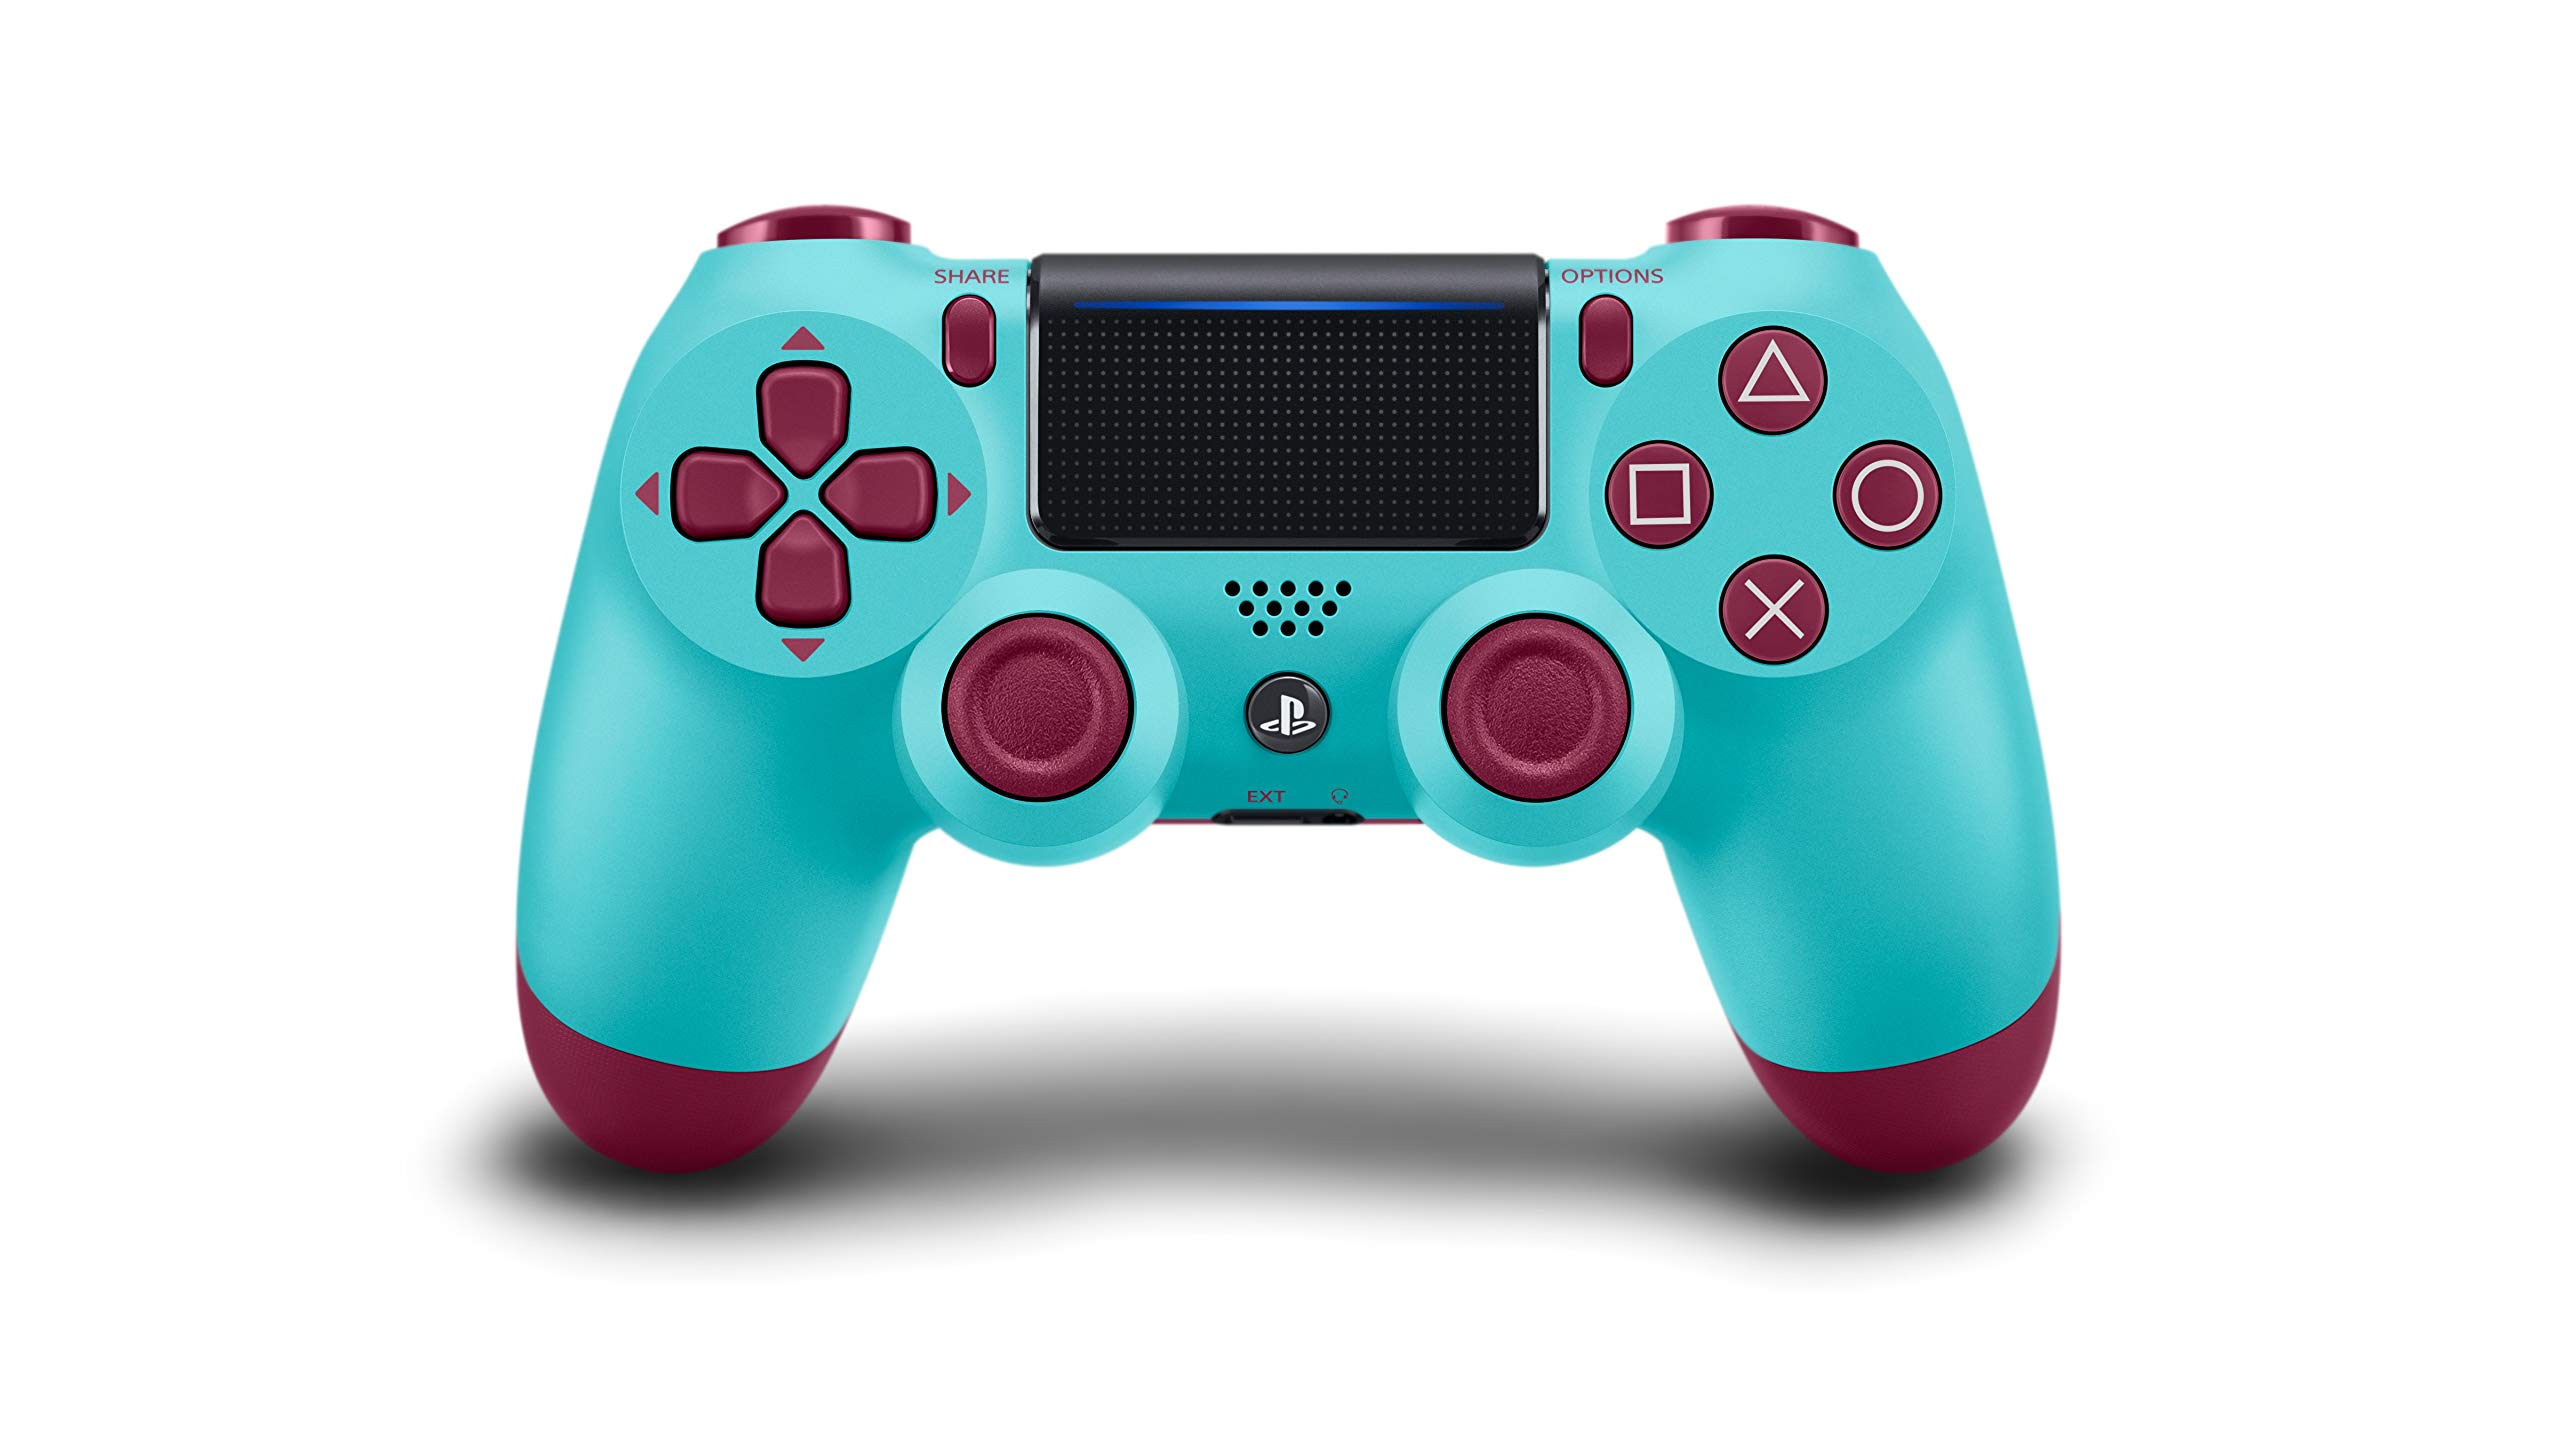 DualShock 4 Wireless Controller for PlayStation 4 - Berry Blue